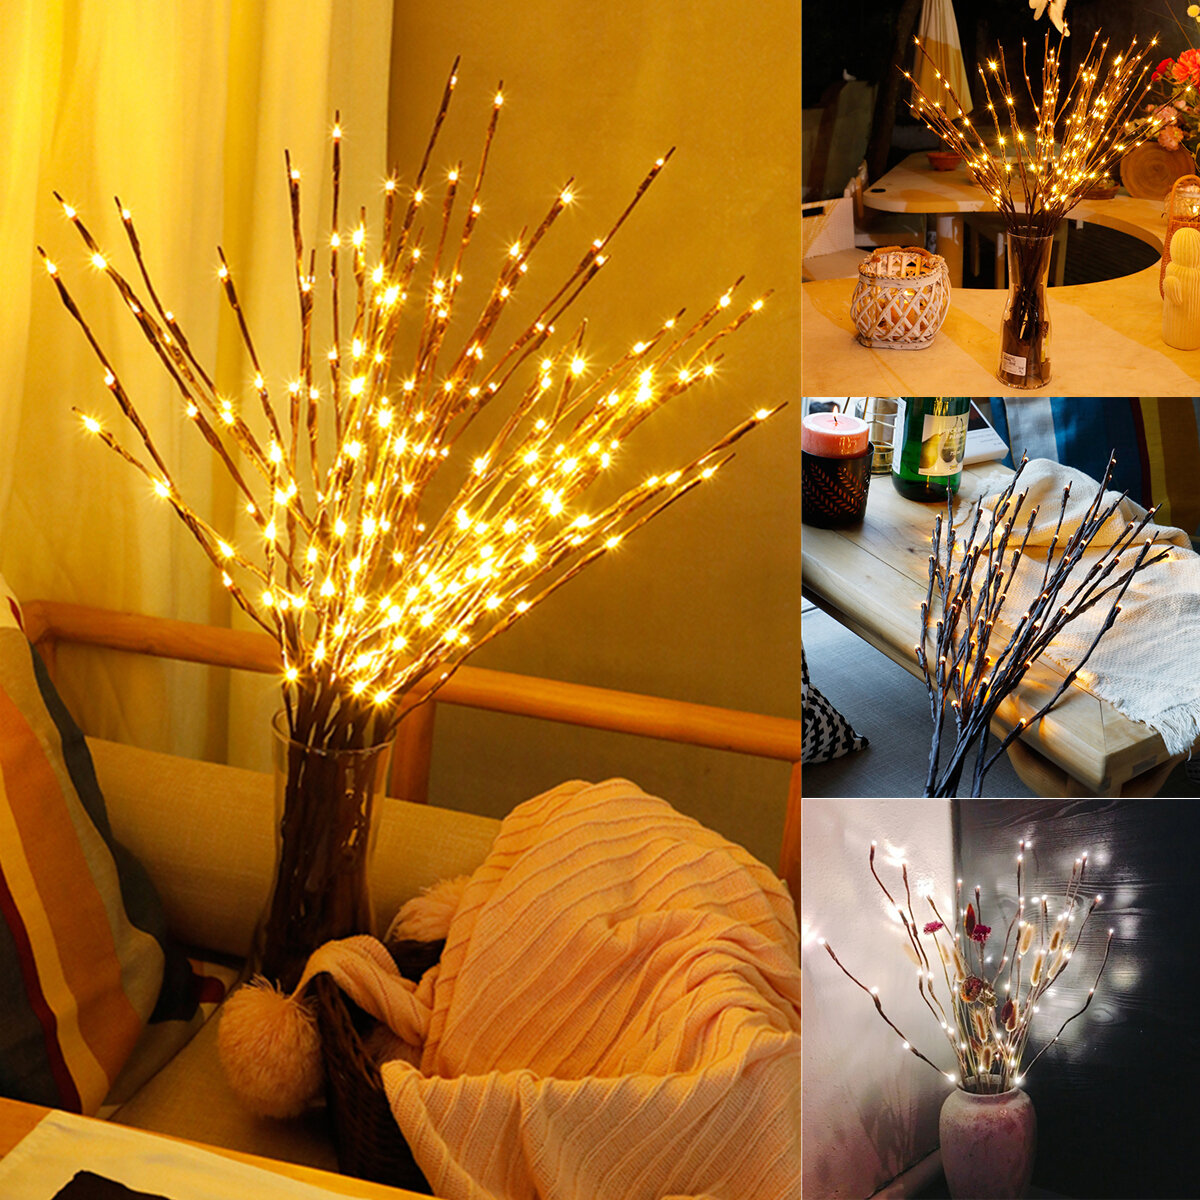 LED Tree Branch Lamp Floral Lights Party Home Decor Holiday Birthday Gift Night Light COD